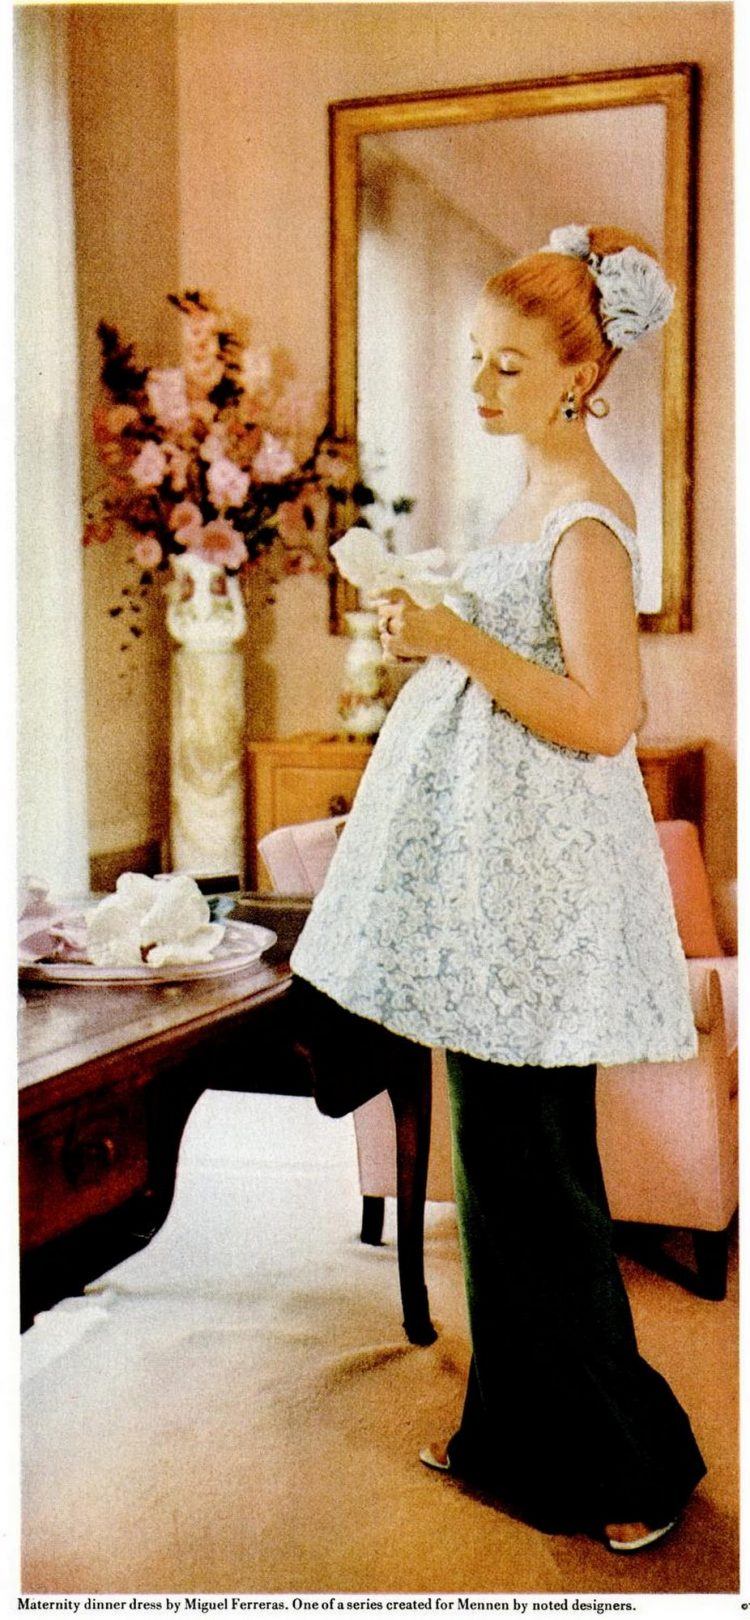 Maternity outfit from the 50s